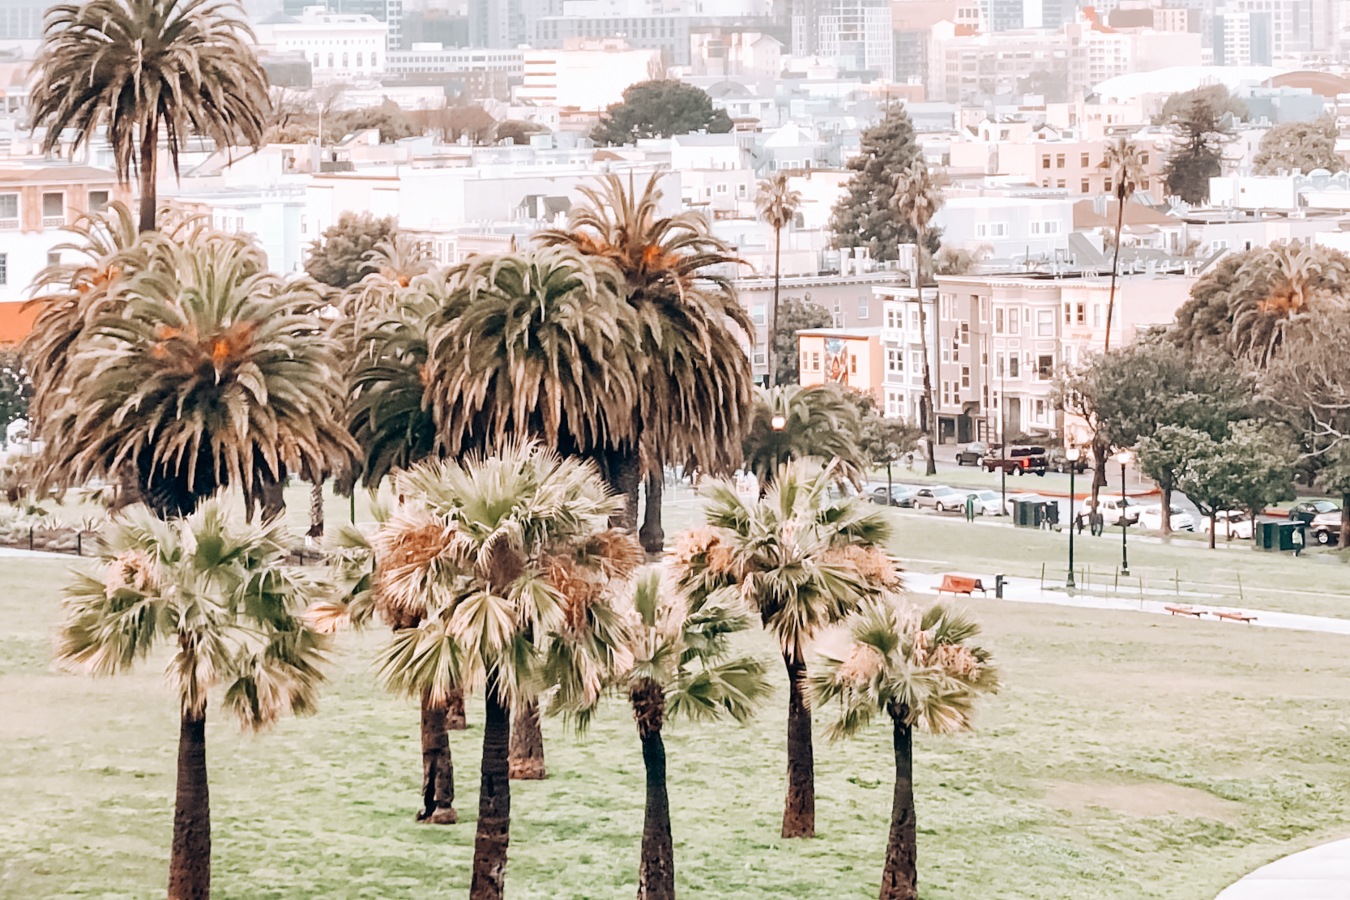 Palm Trees in Mission Dolores Park